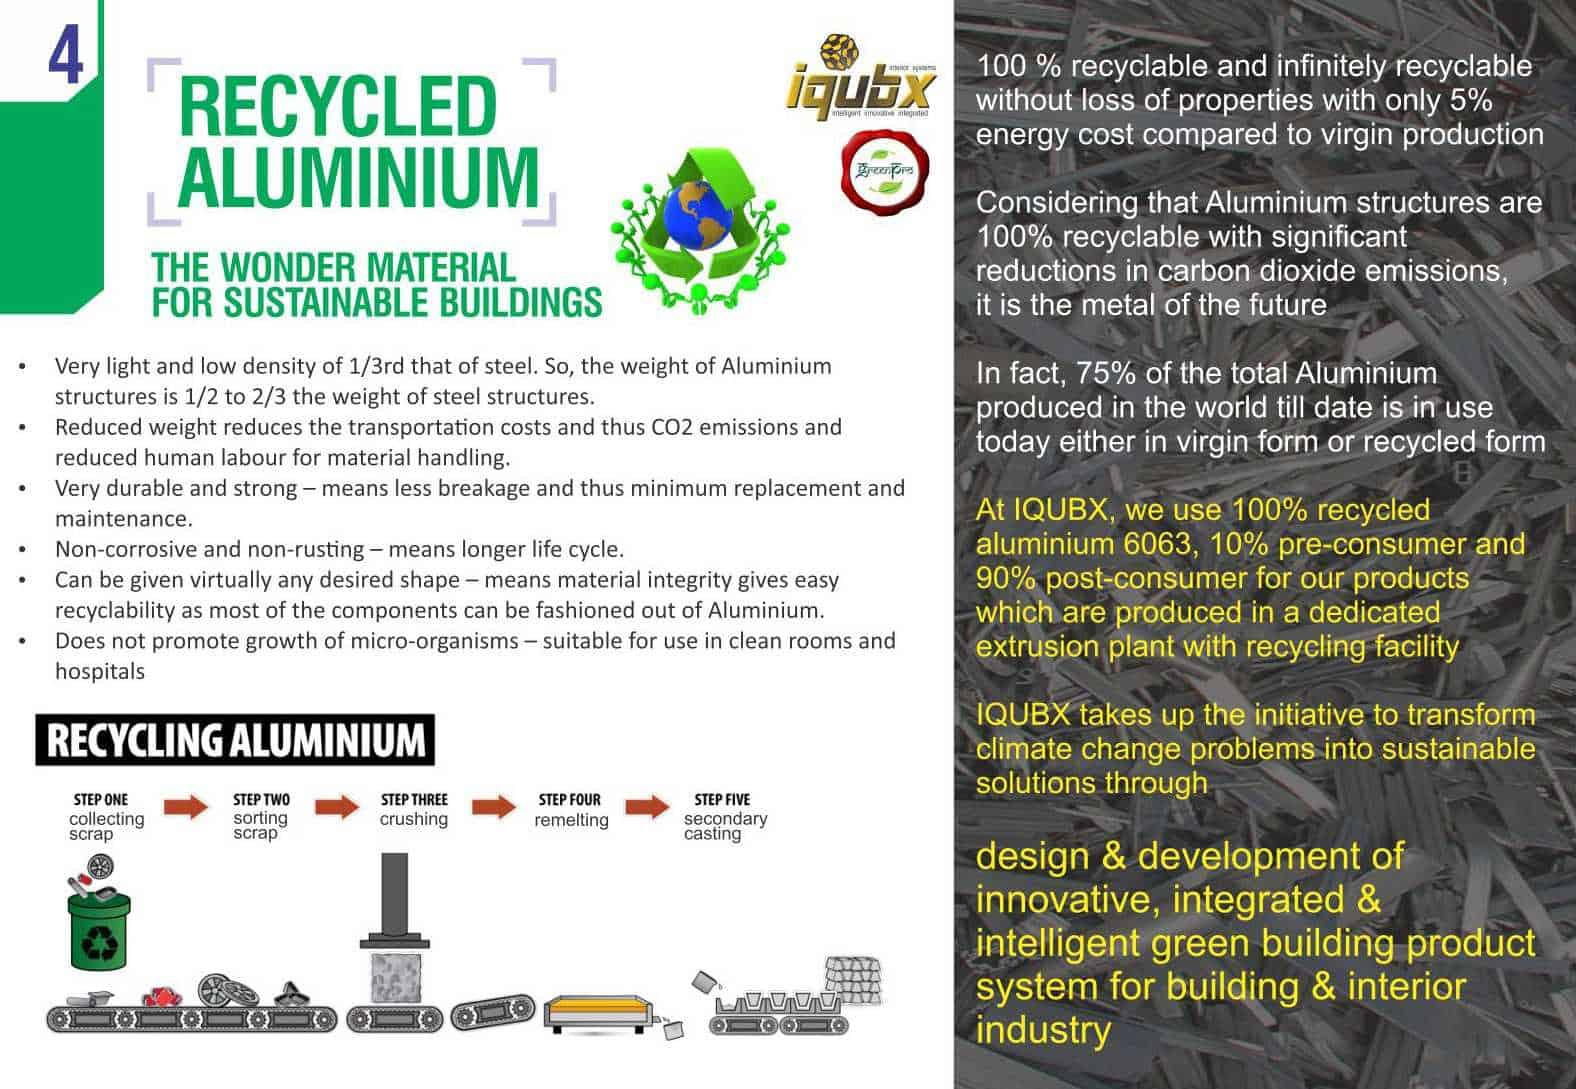 IQUBX greenpro certified products are made of 100% recycled aluminium